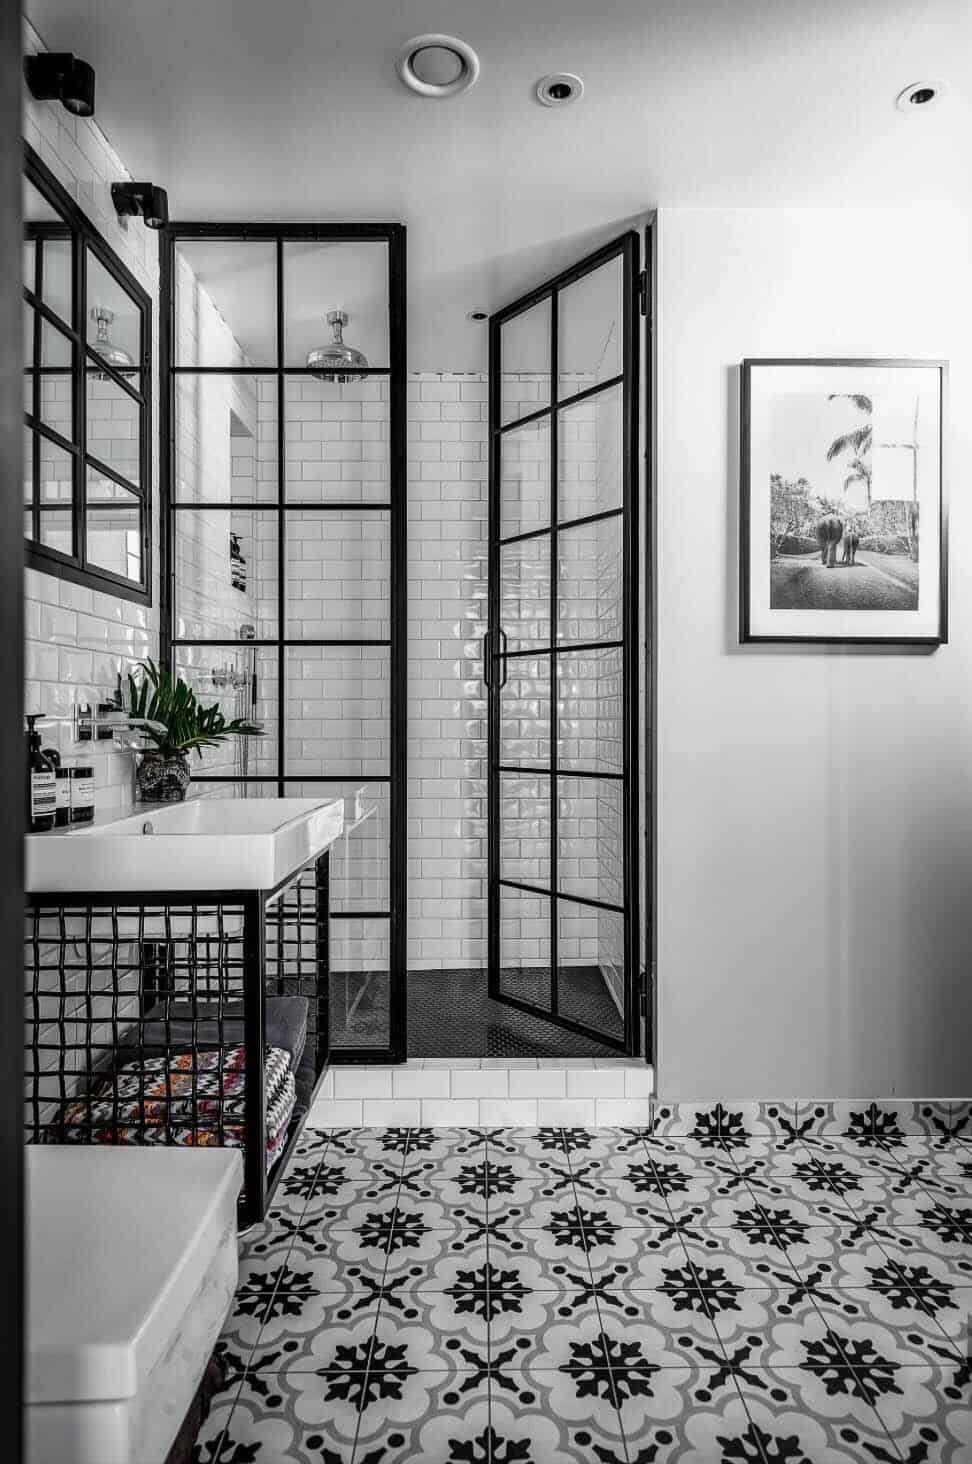 25+ Incredibly stylish black and white bathroom ideas to inspire #blackwhitebathrooms